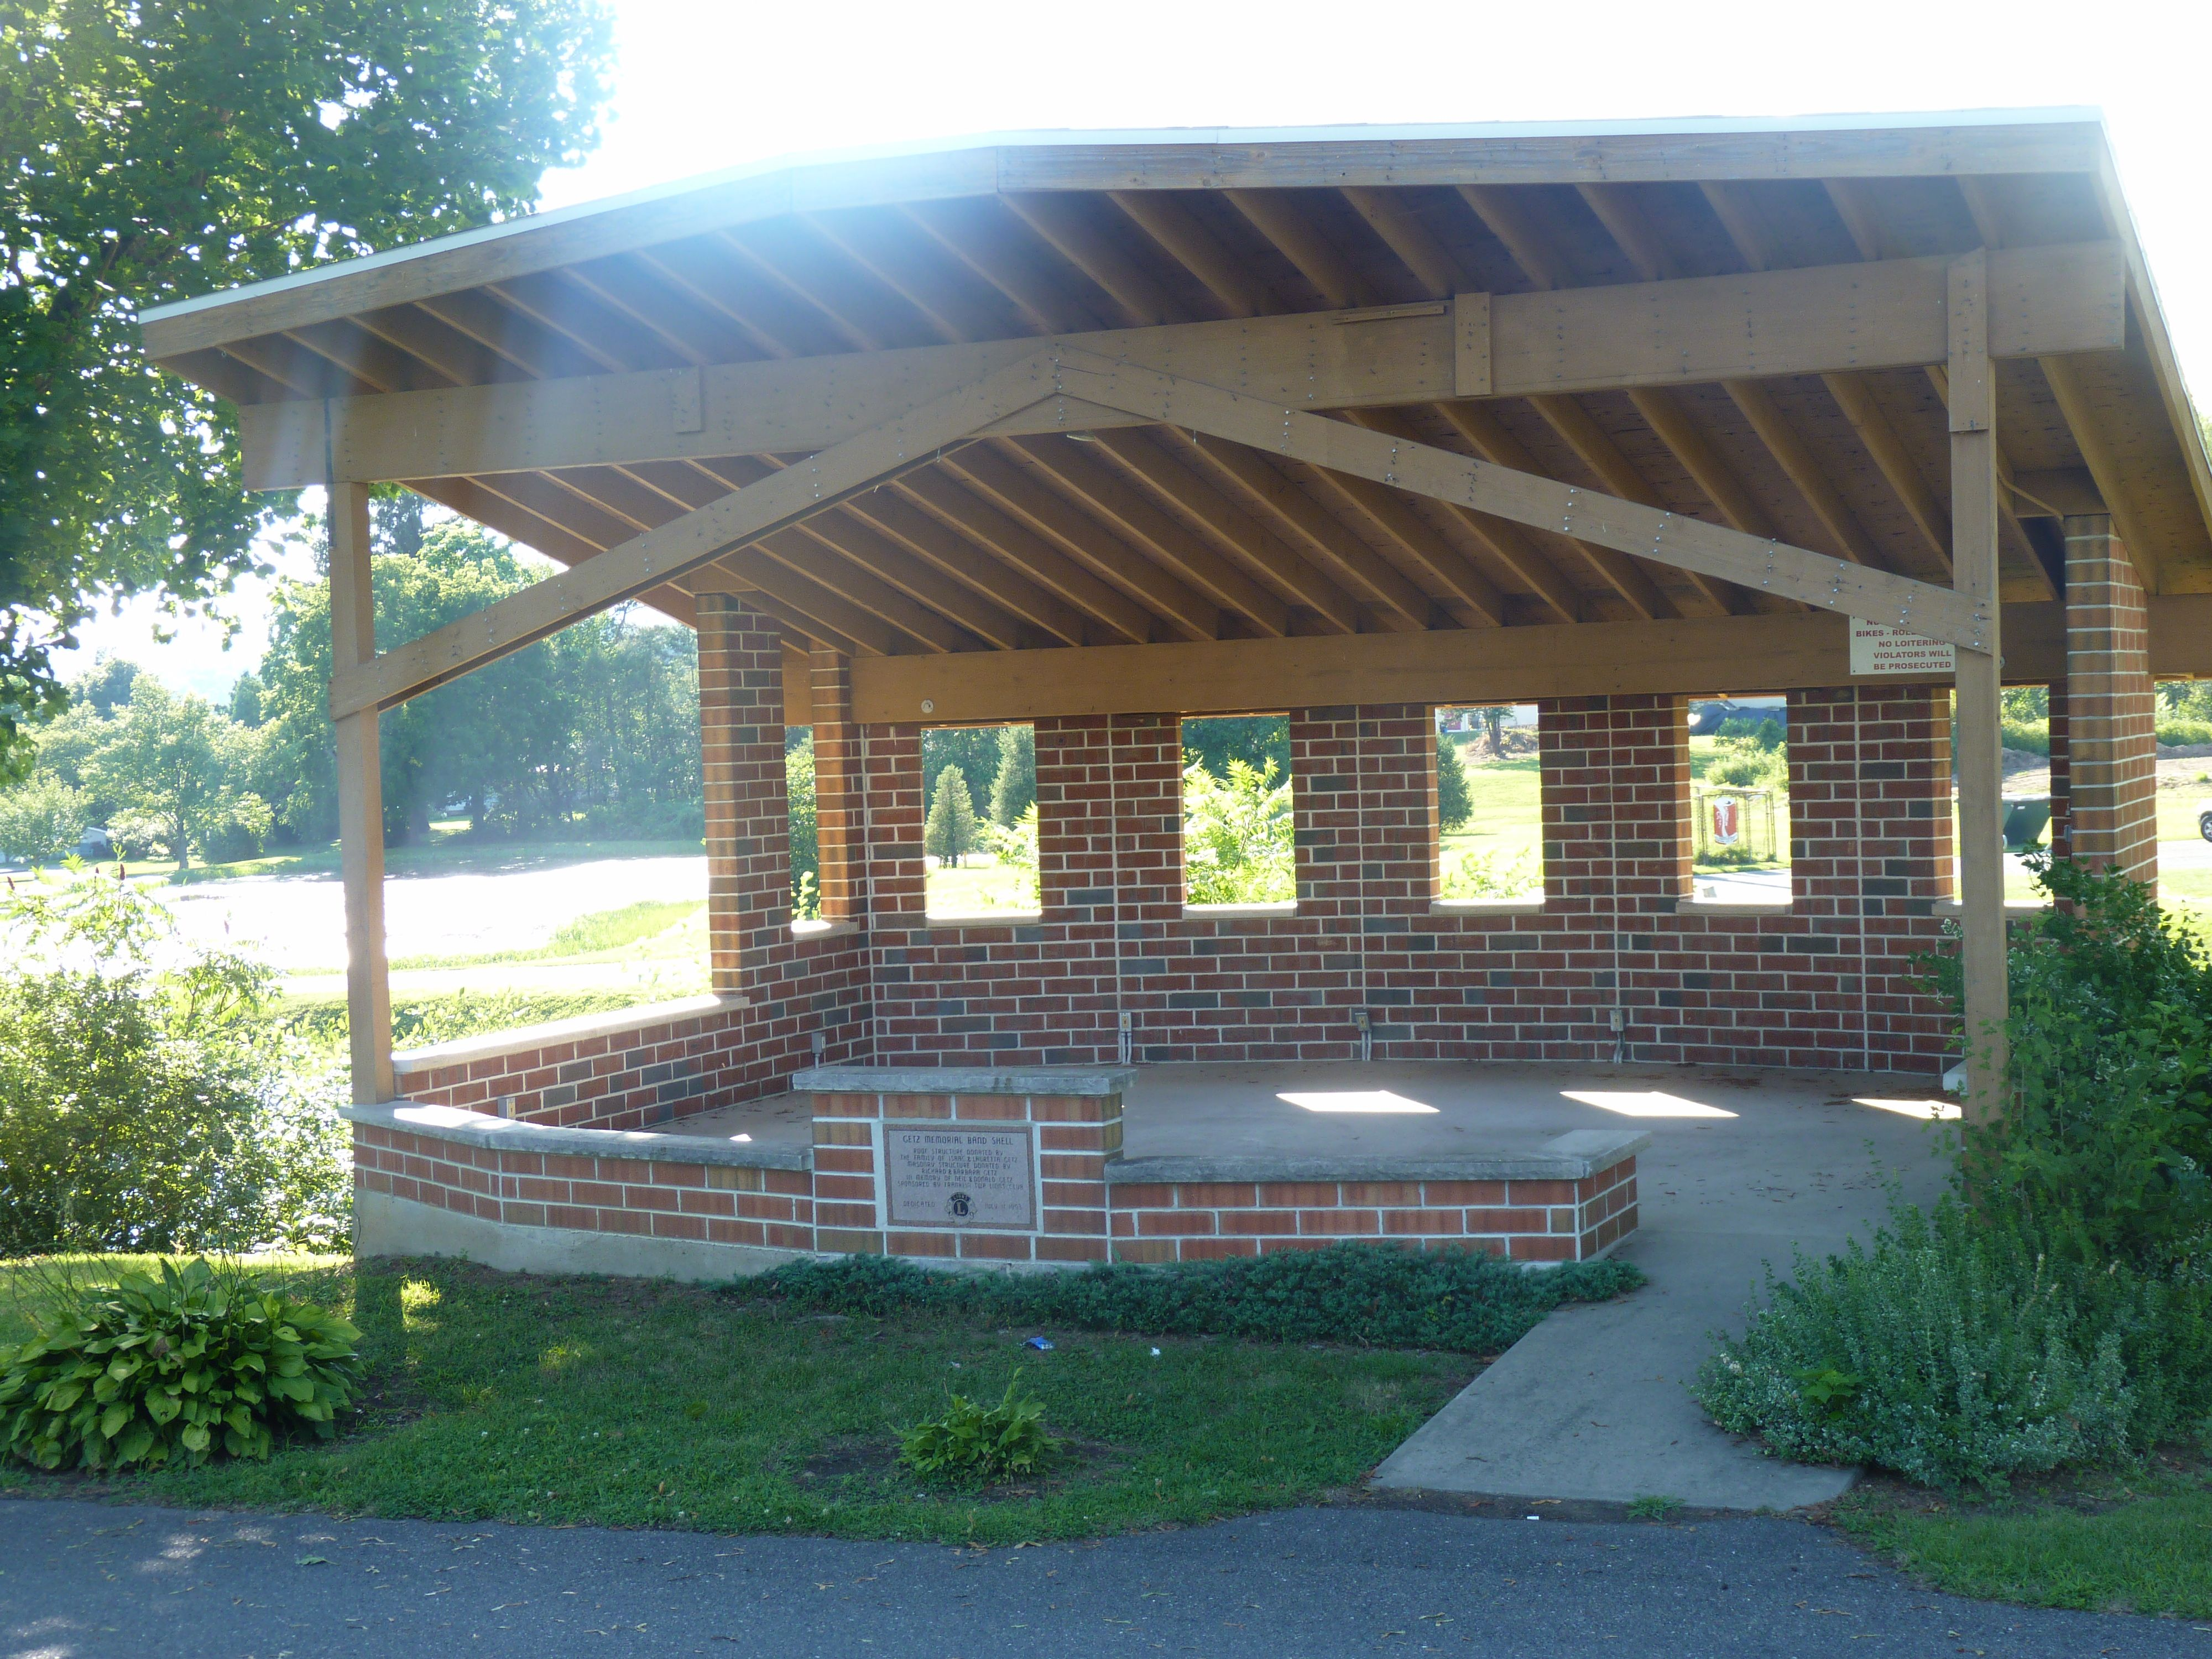 Getz Memorial Band Shell At Phifer S Ice Dam Ice Dams Outdoor Structures Pergola